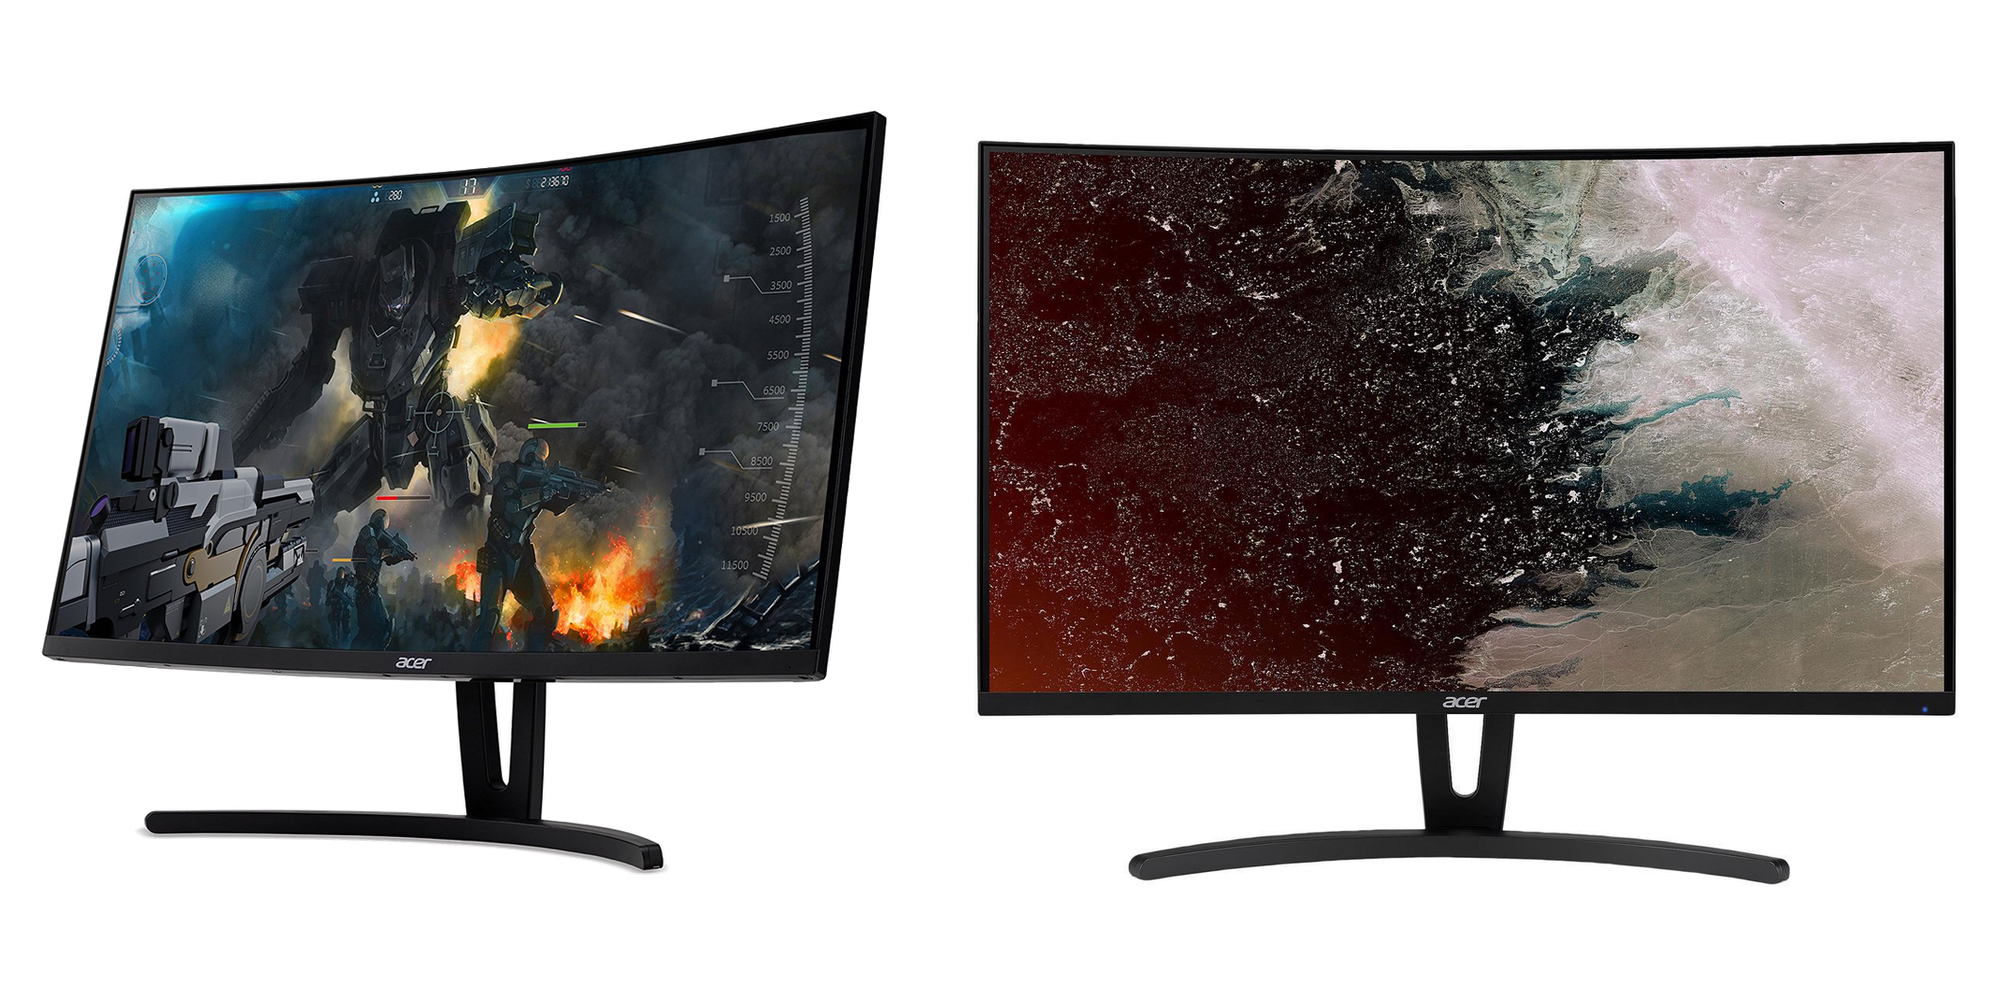 Pair your MacBook with a new monitor from $150: Acer 27-inch